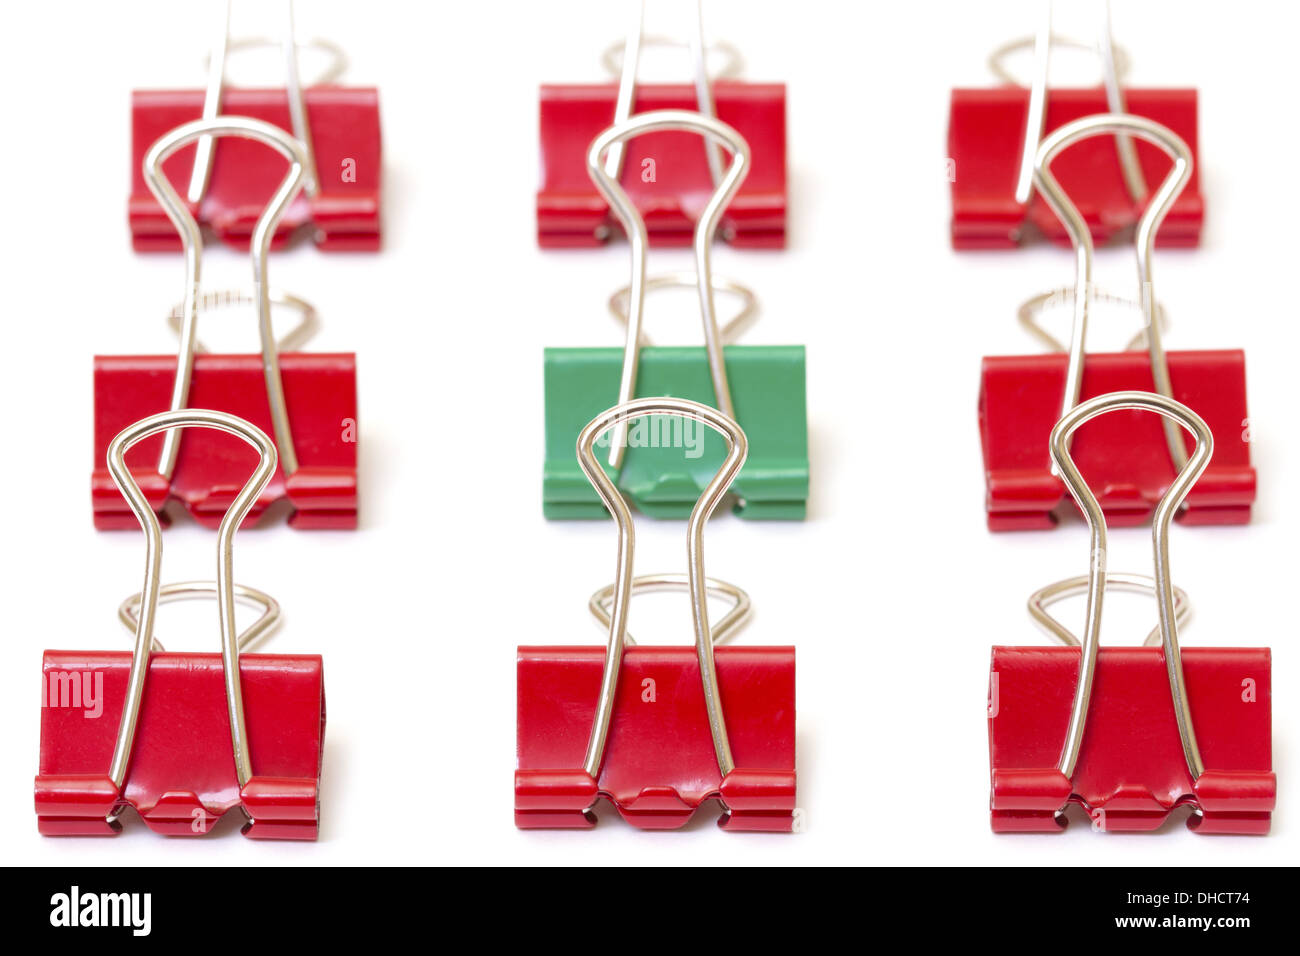 Green paper clip among red - Stock Image